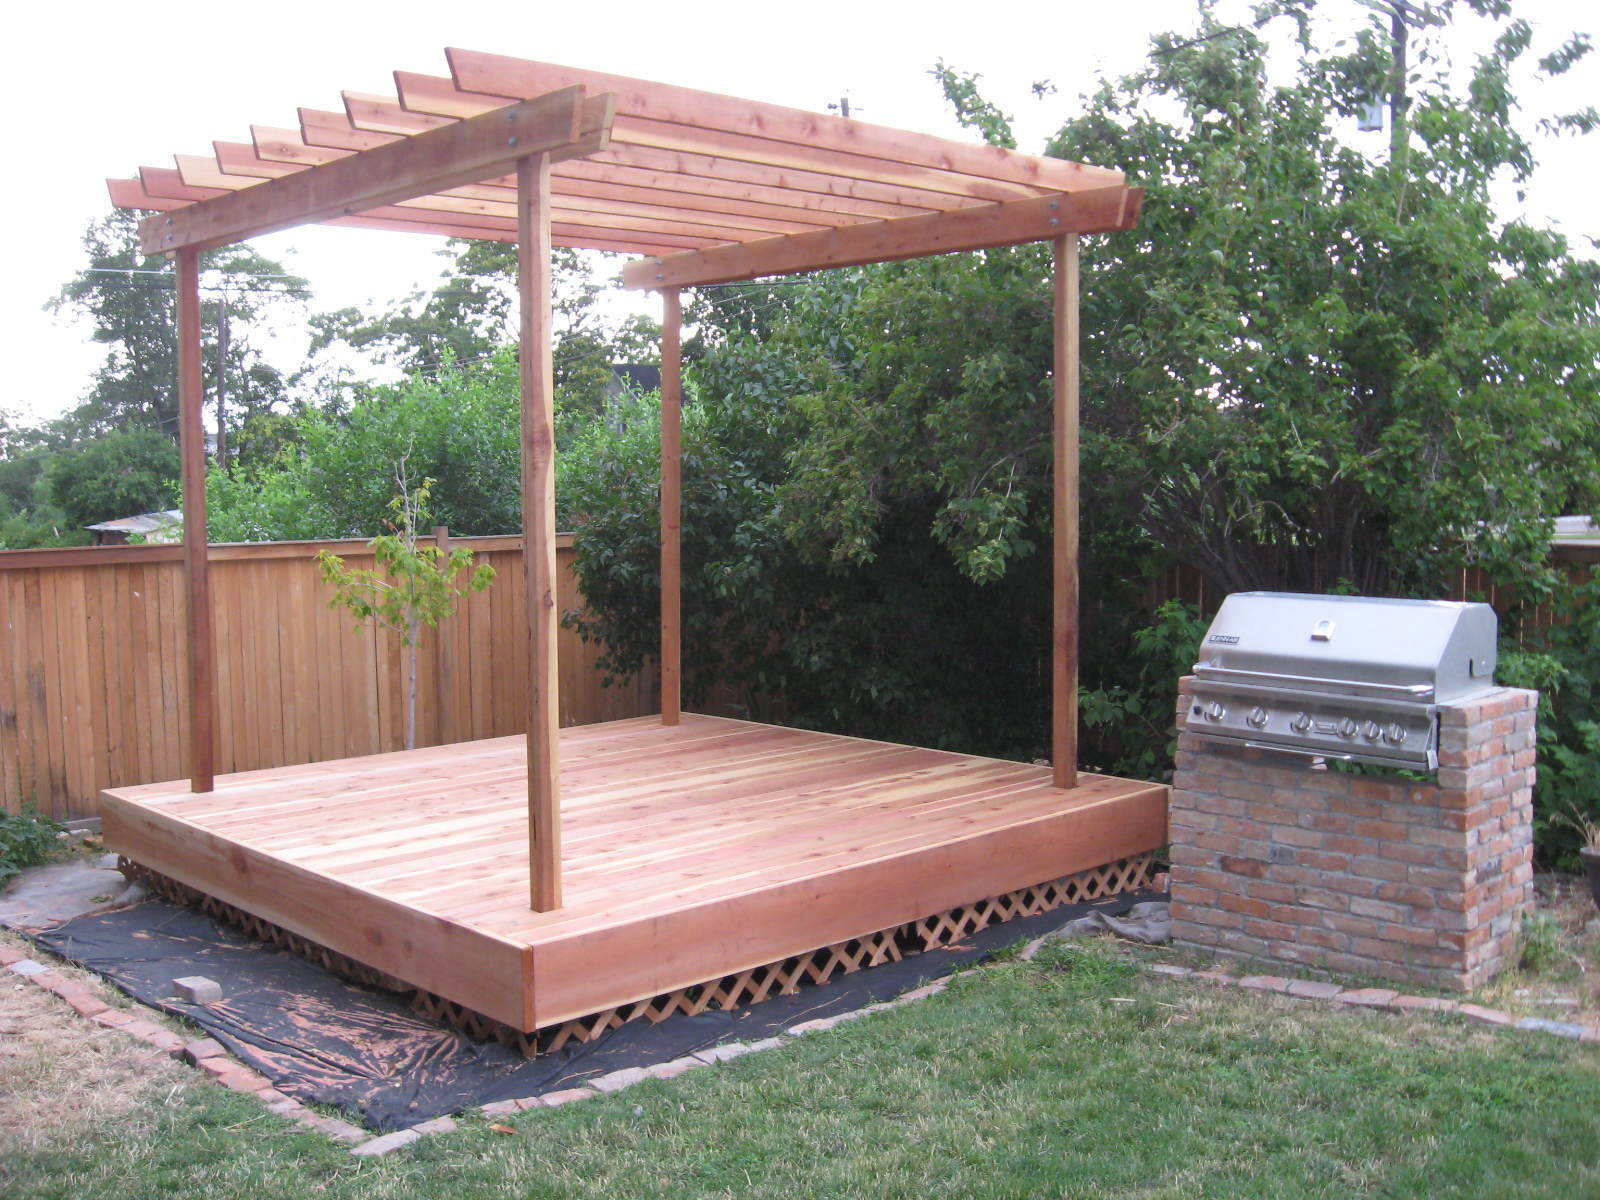 ogden insights how to build a pergola. Black Bedroom Furniture Sets. Home Design Ideas